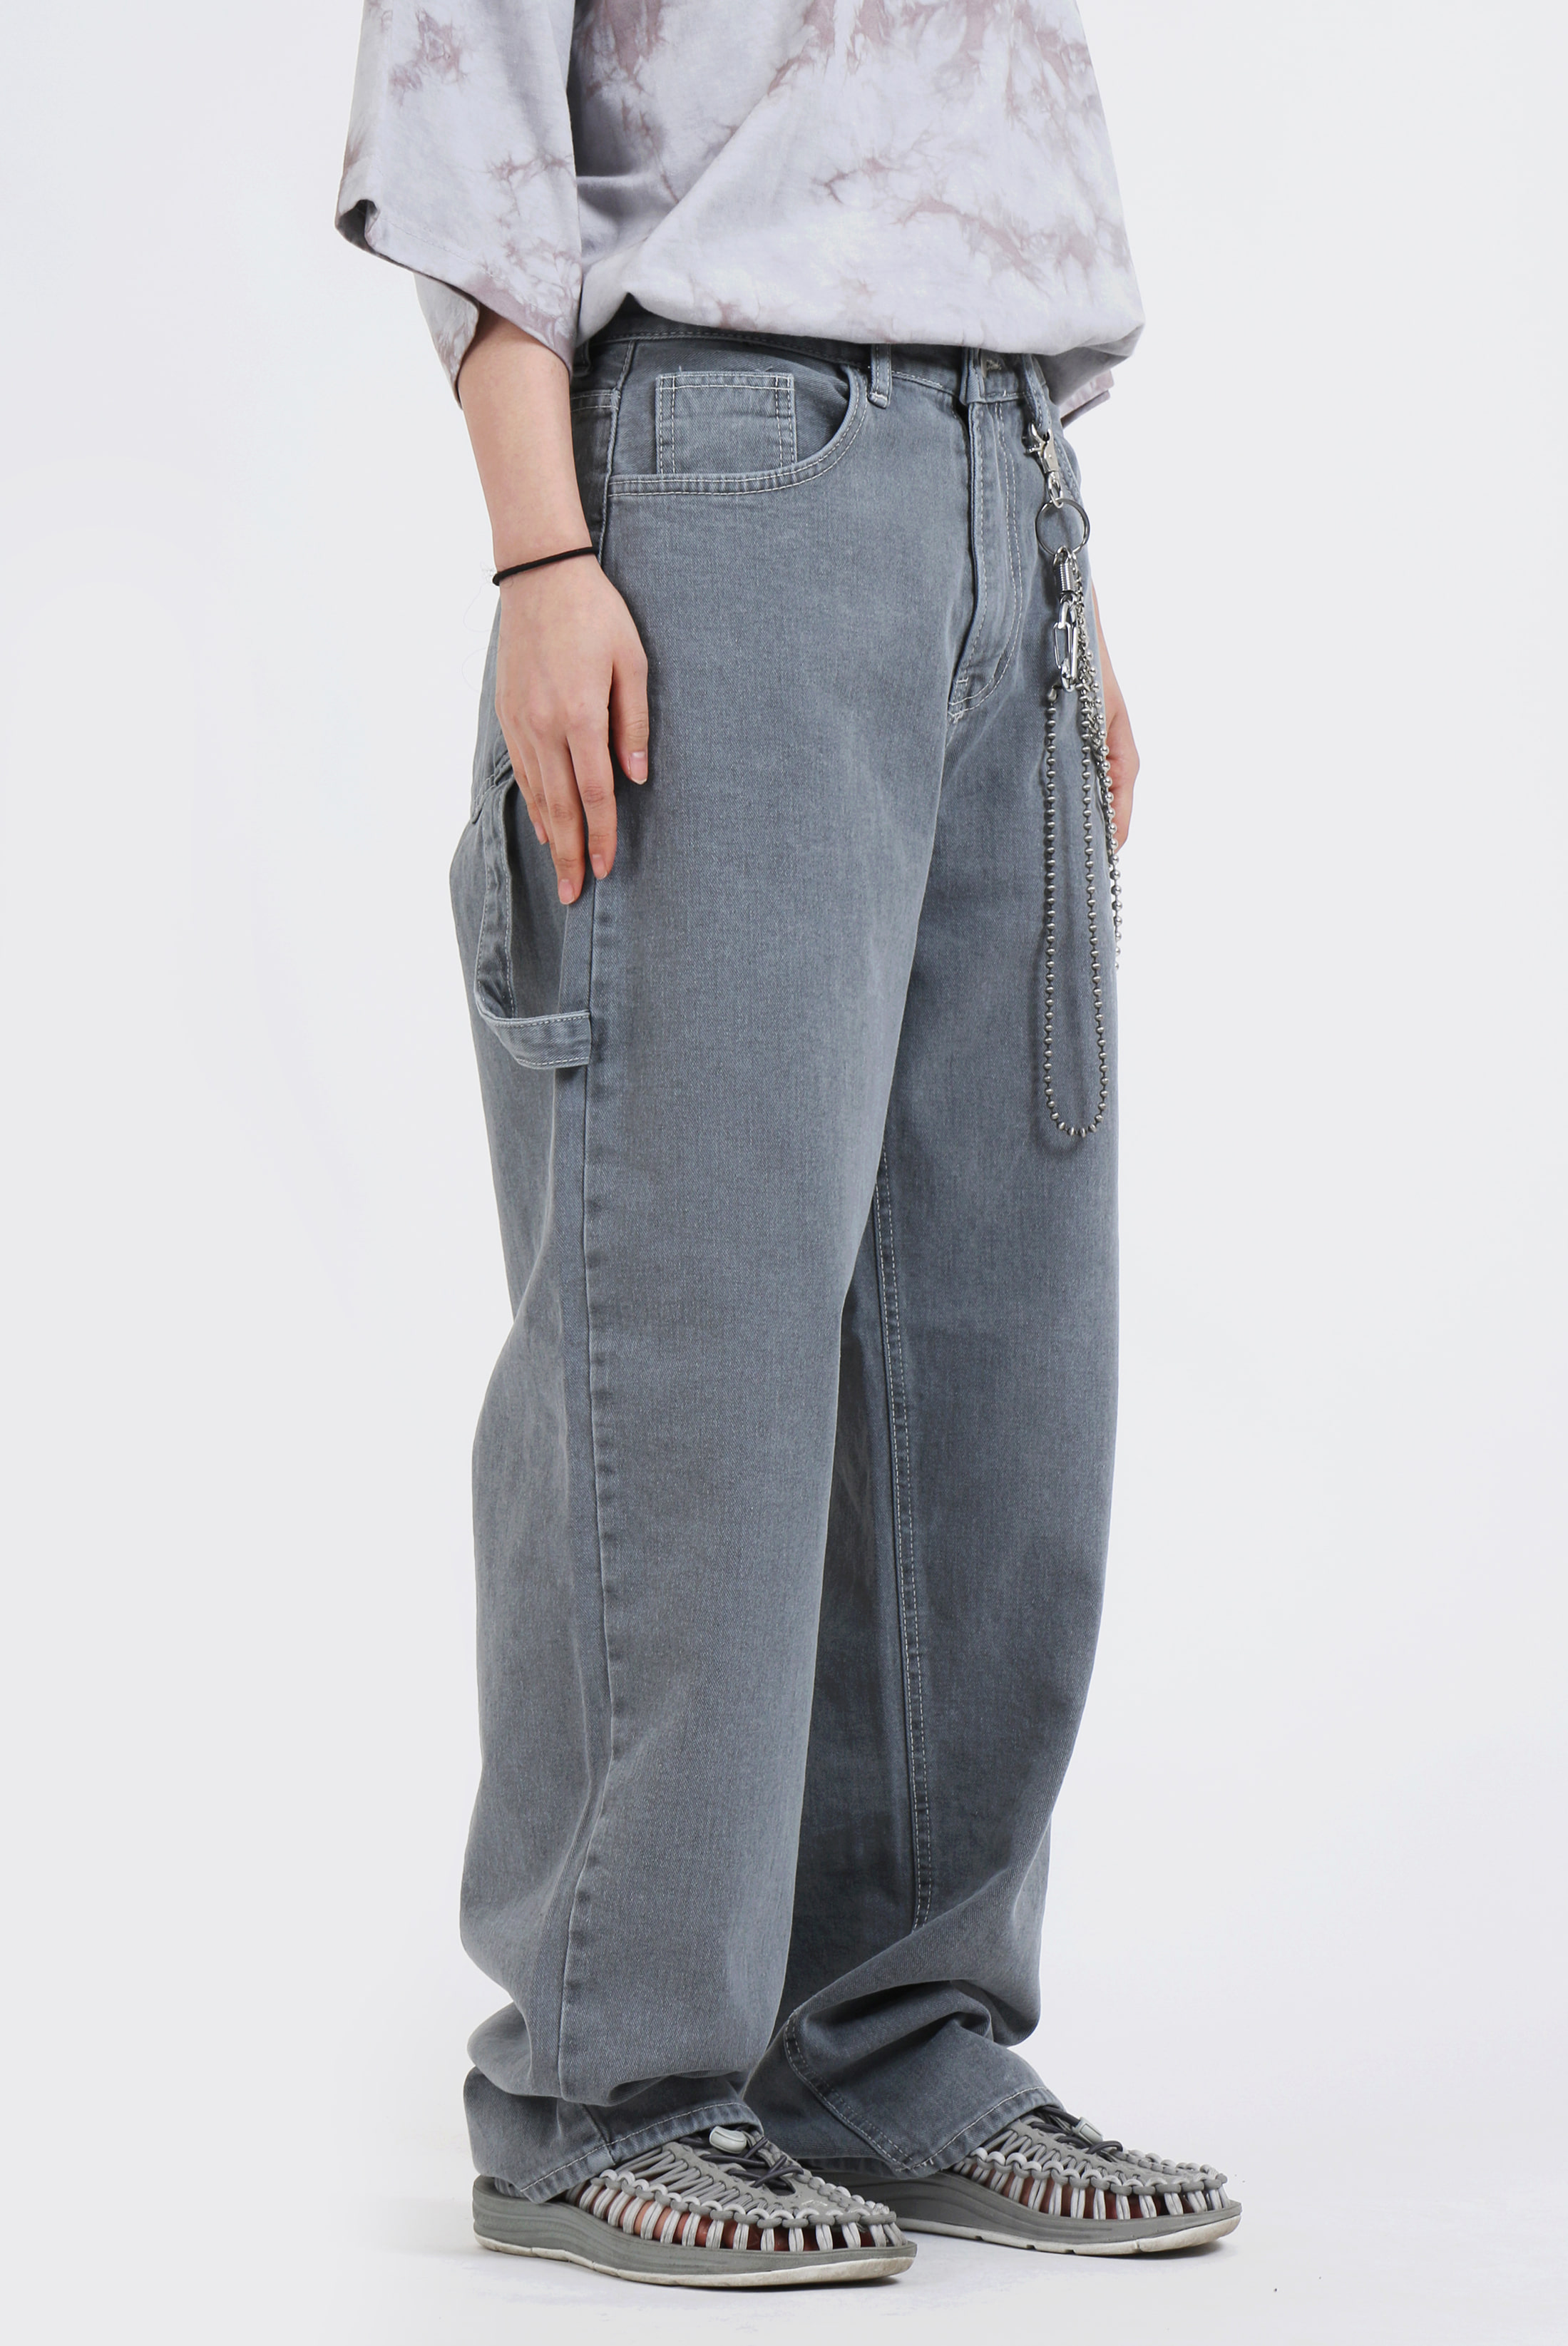 (W) Work_Denim Gray Wide_Long Pants